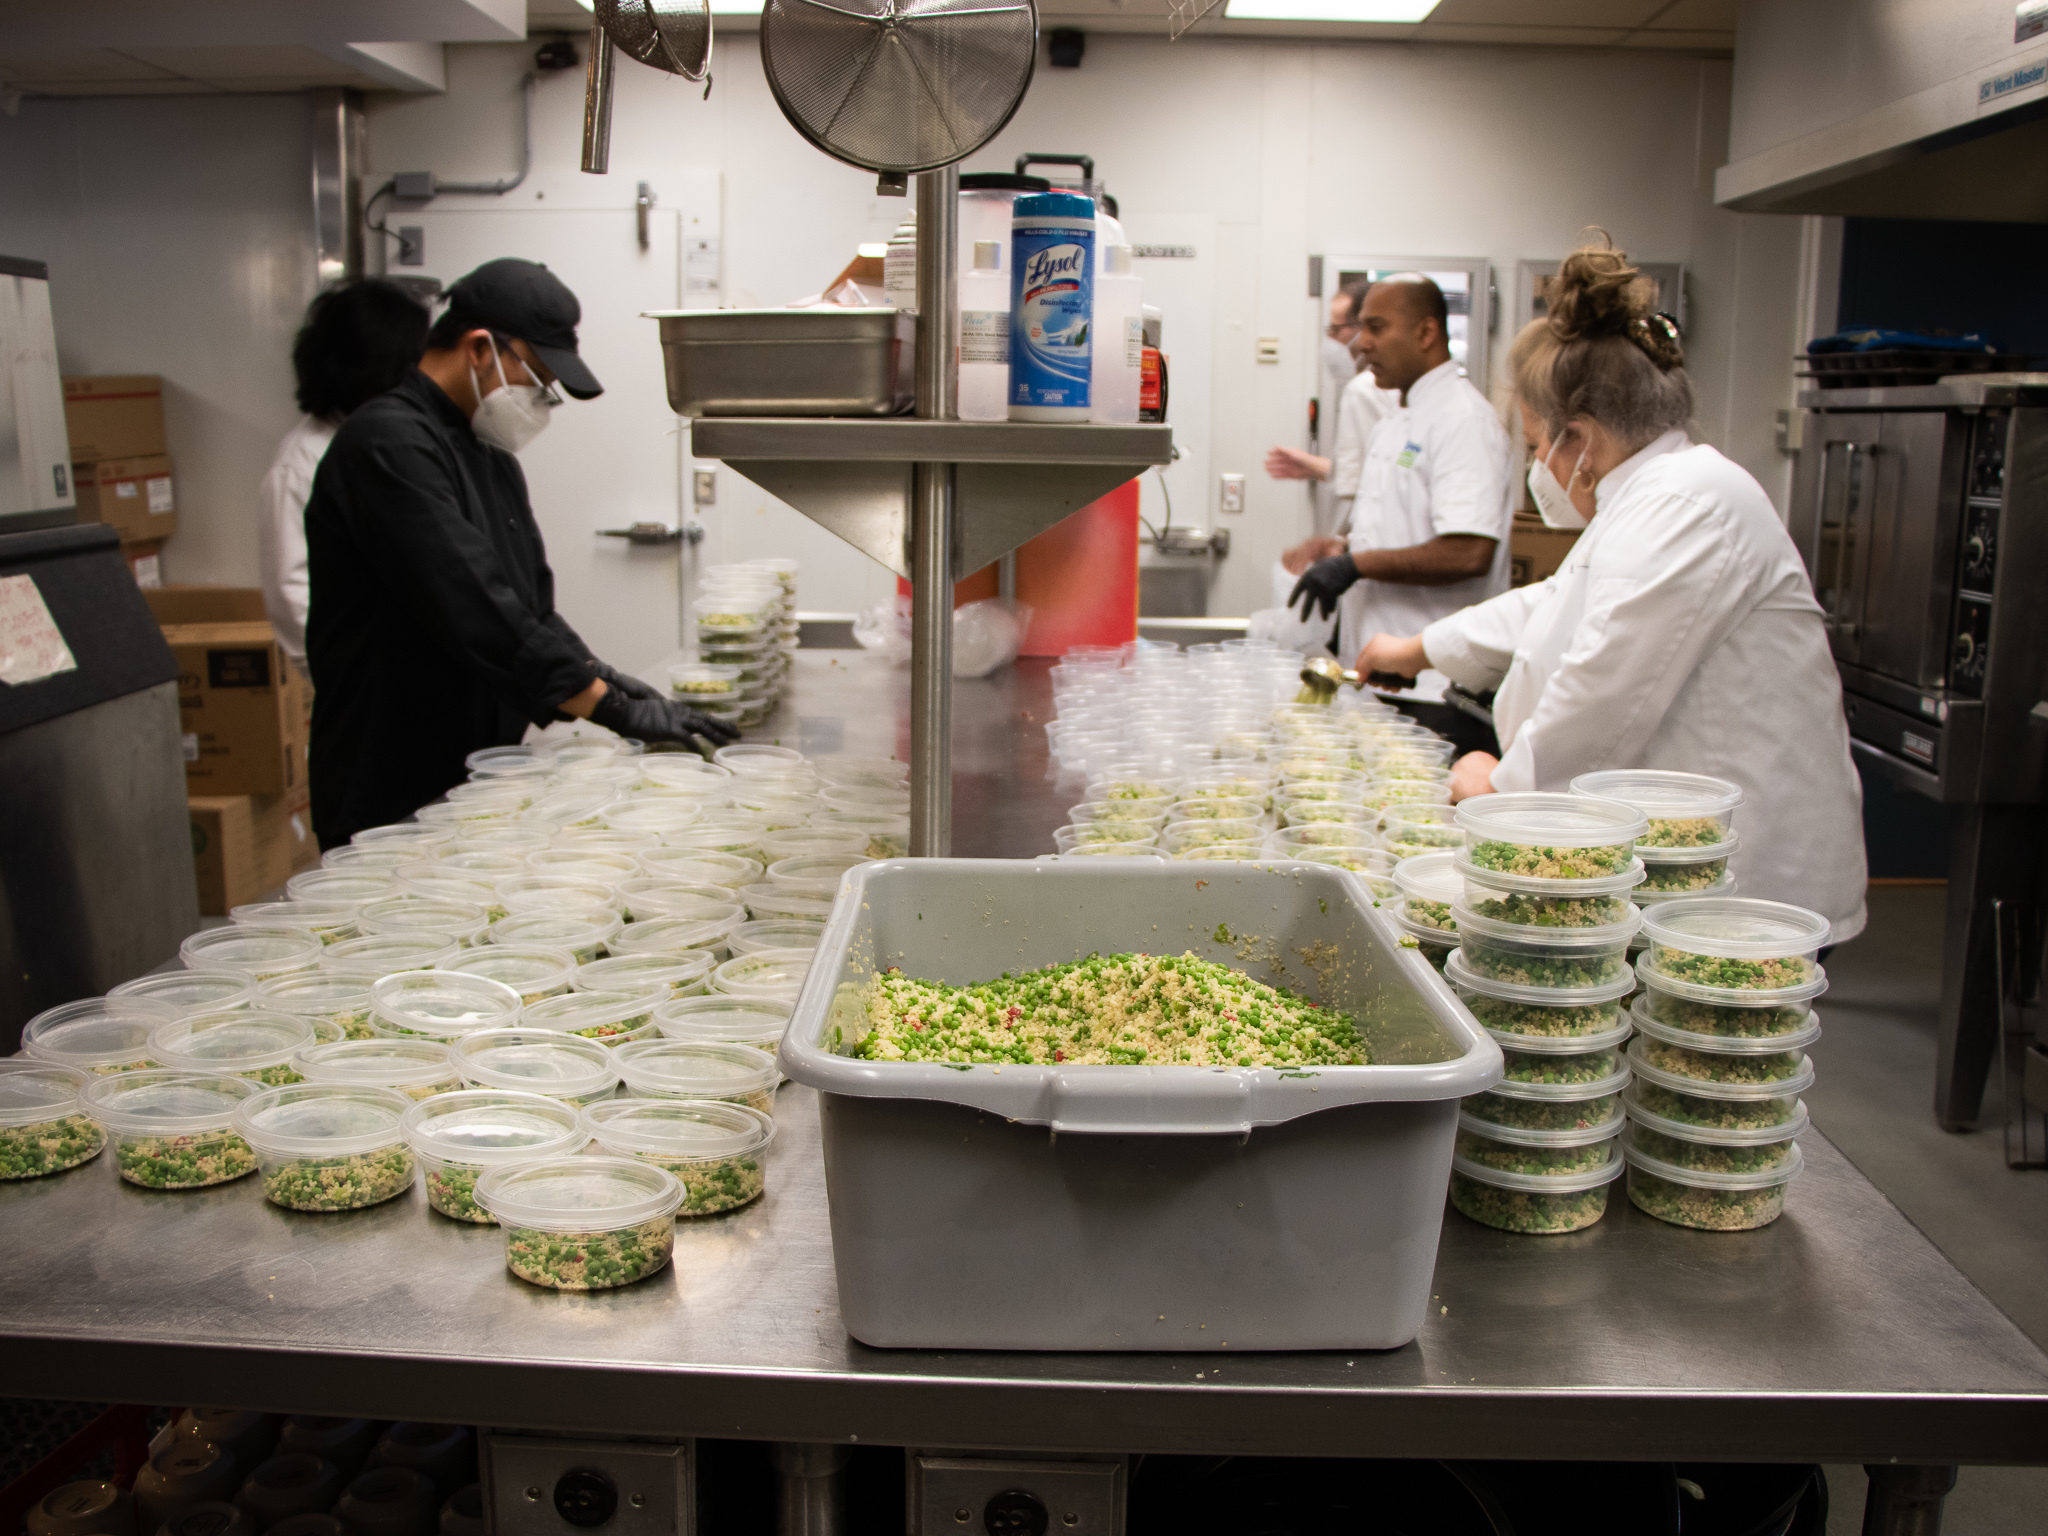 Tight quarters in the kitchen at the Langara Golf Course clubhouse mean staff find it hard to keep a safe distance from one another, but they hope that masks and frequent disinfecting helps.